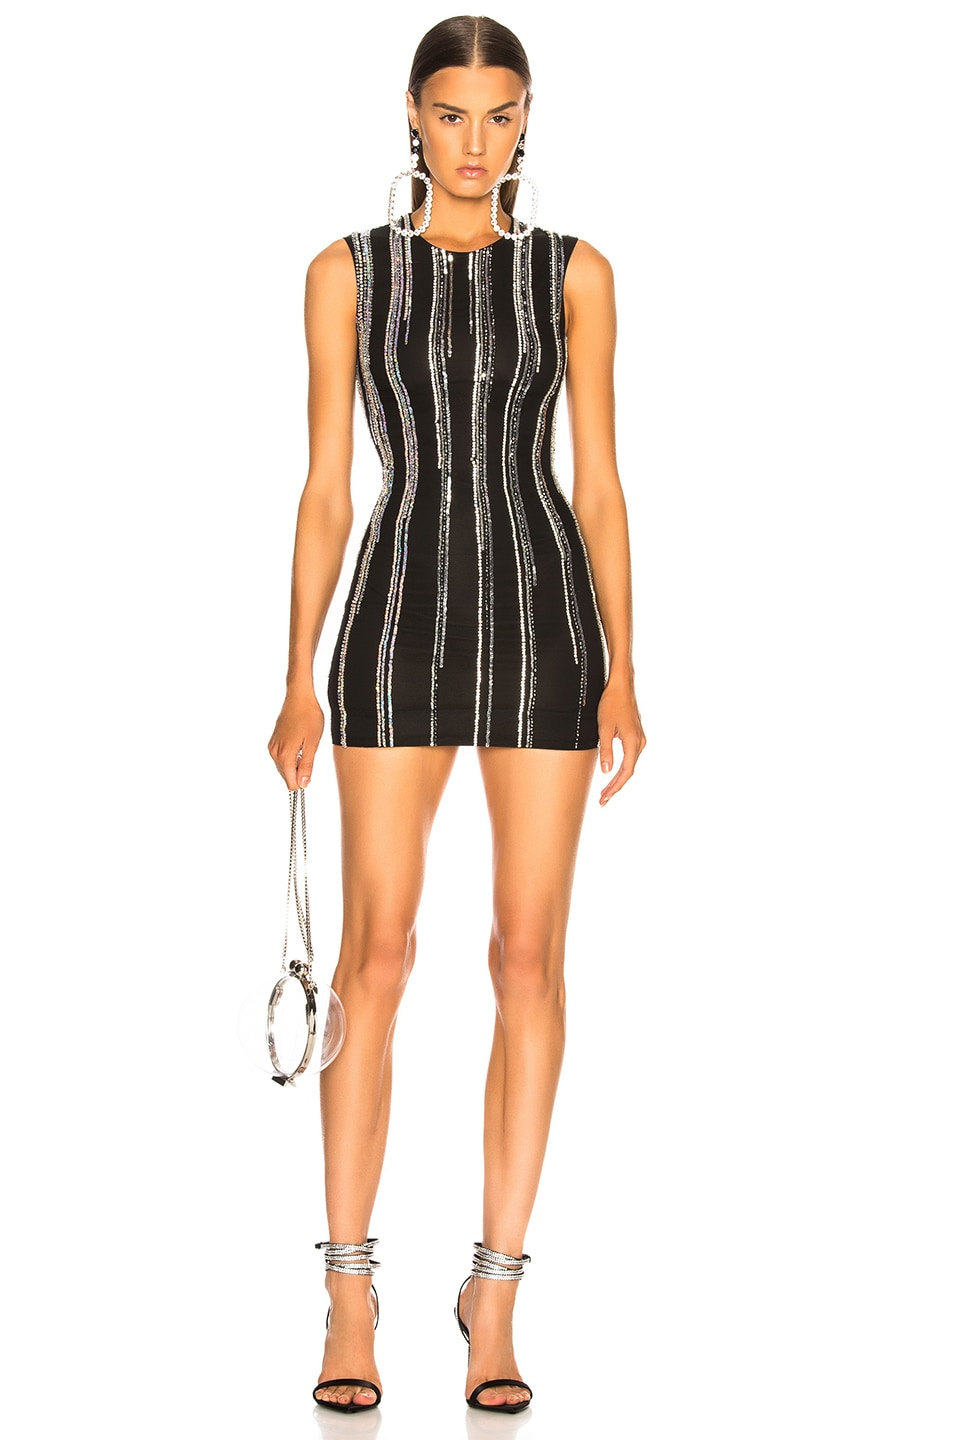 54d887e8 Image 1 of BALMAIN Striped Sequin Sleeveless Mini Dress in Black &  Holographic Silver